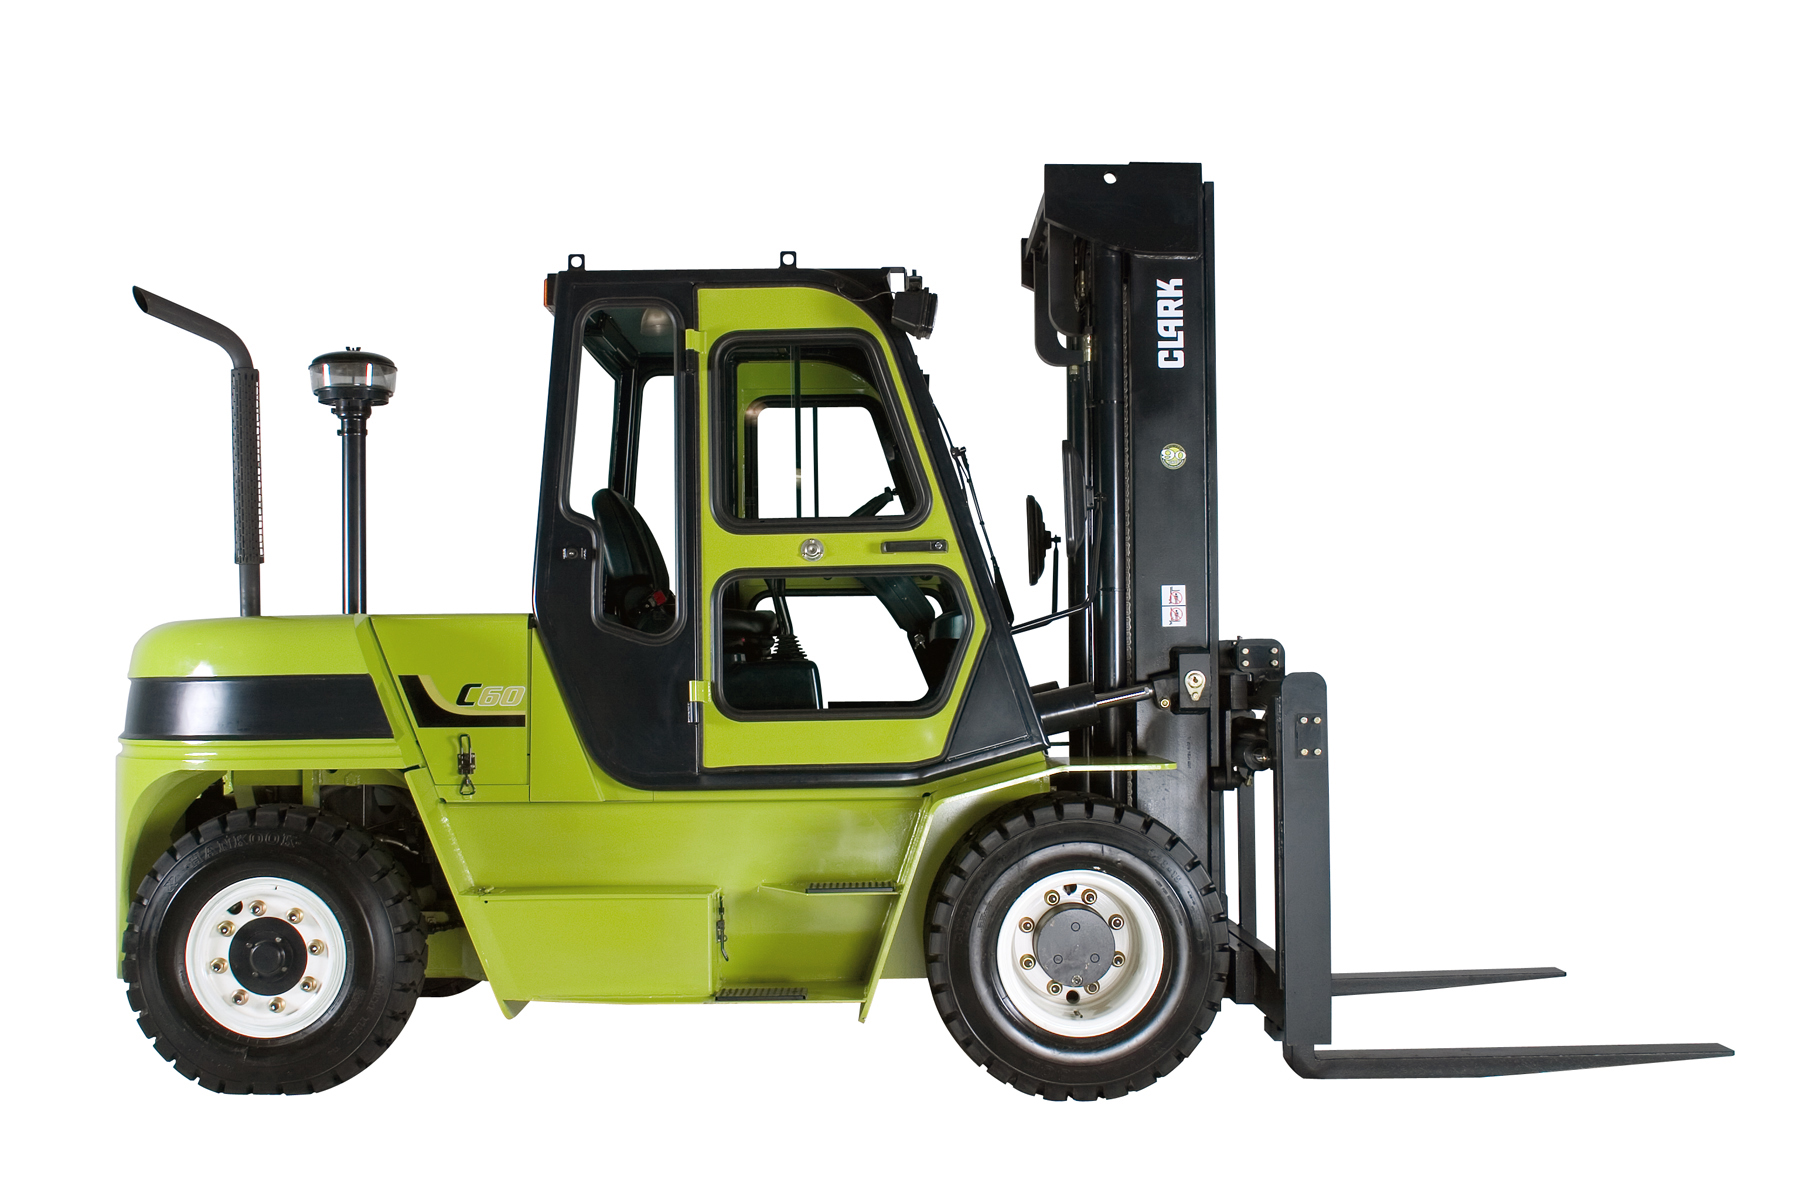 Clark forklift photo - 10